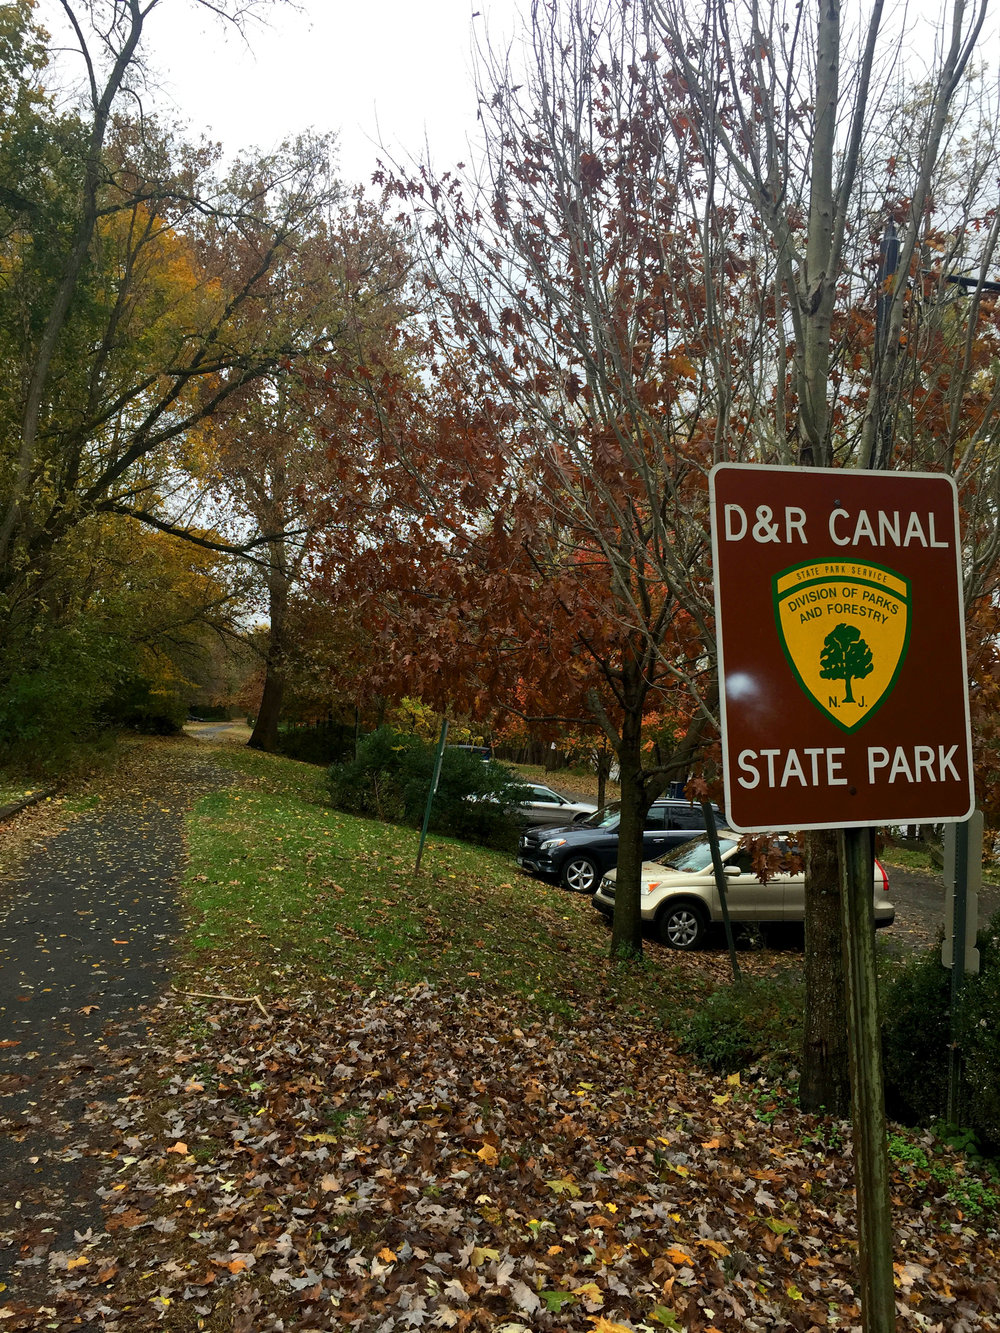 The Delaware and Raritan Canal State Park in Princeton, NJ.